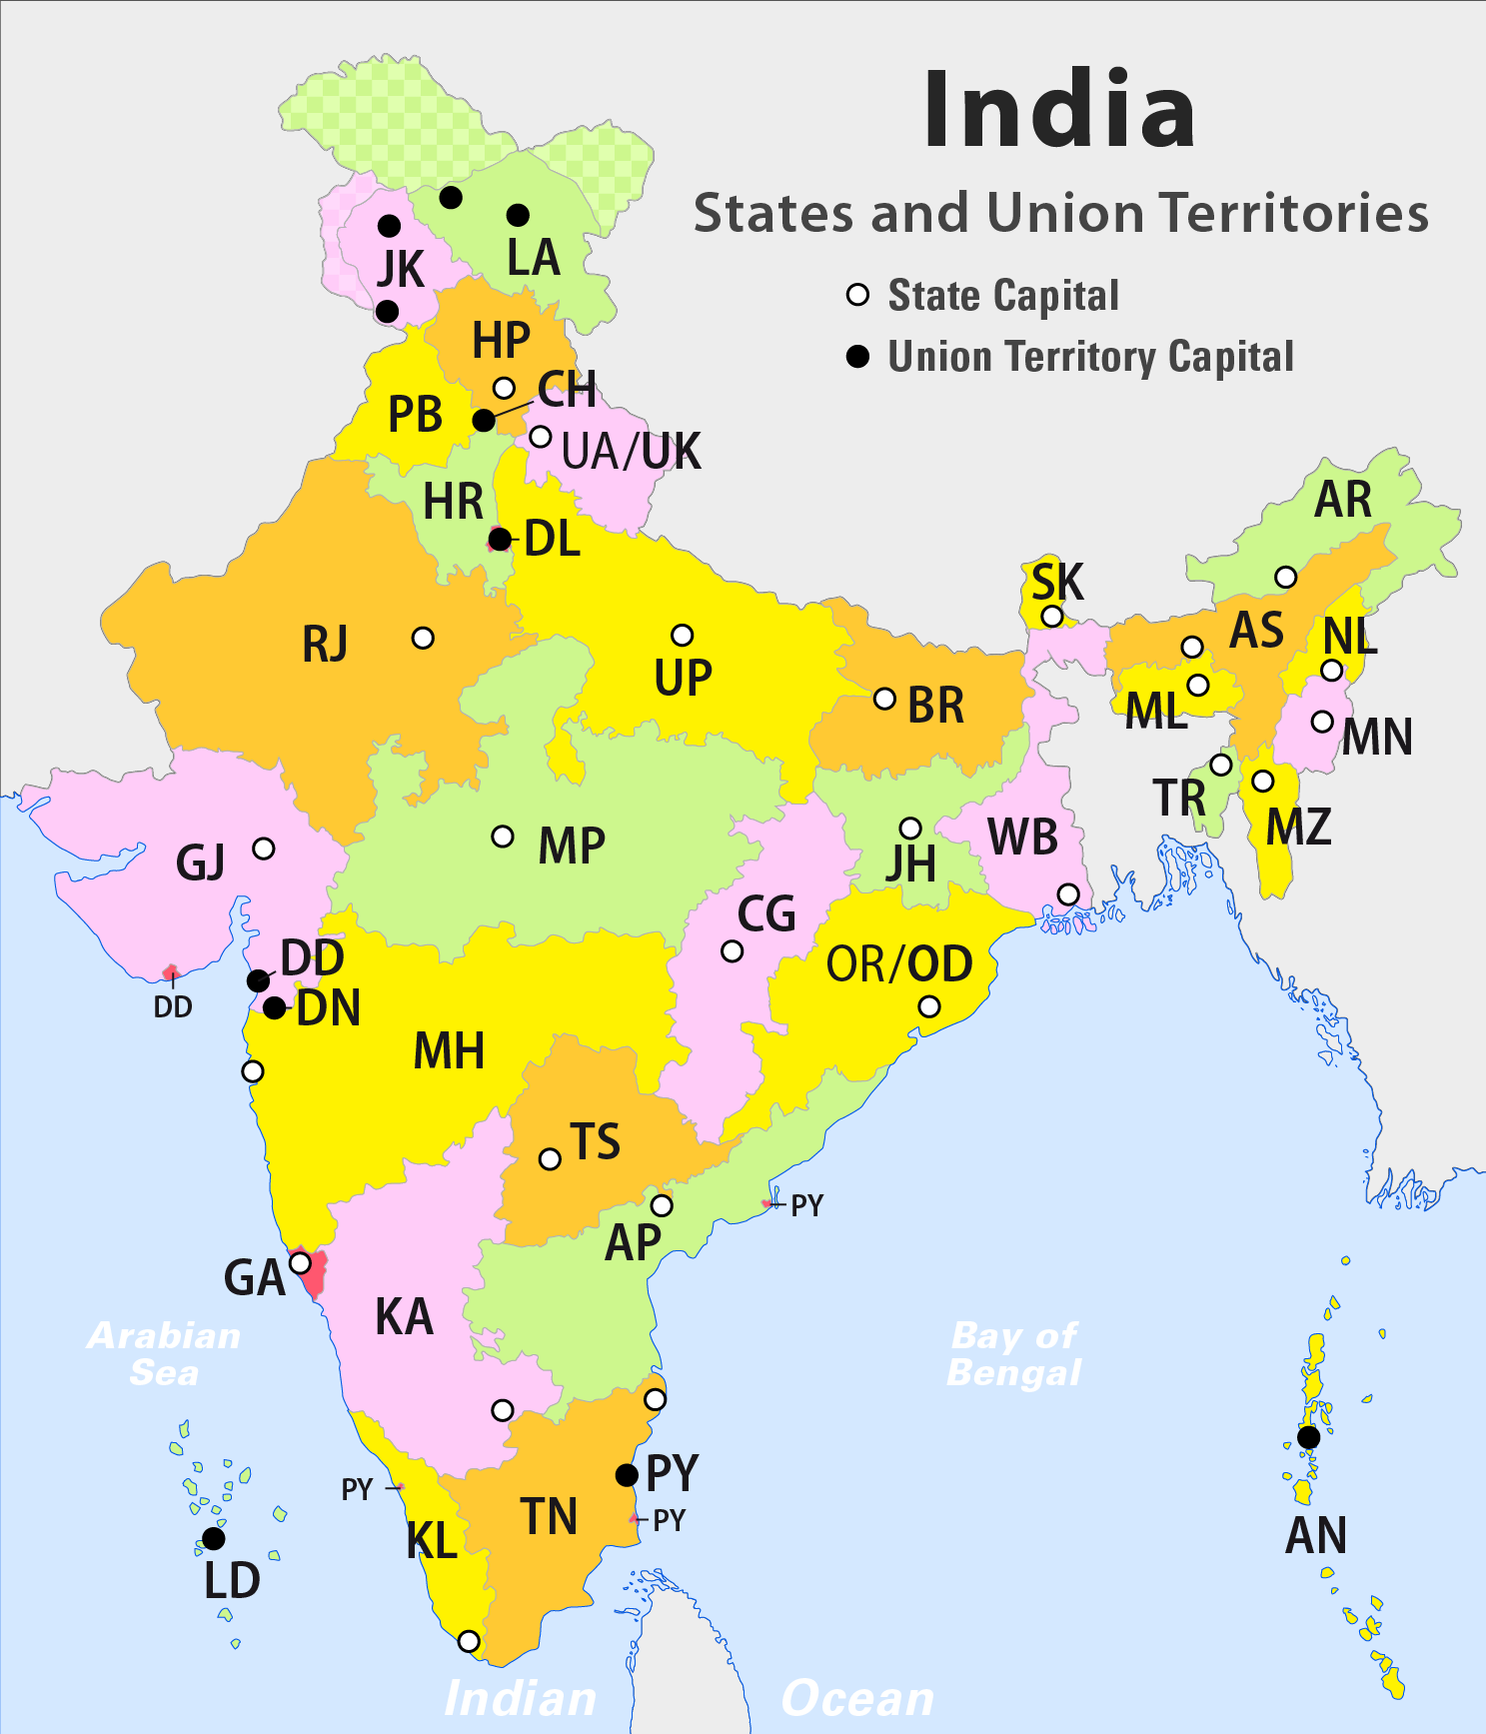 List of RTO districts in India - The complete information and online